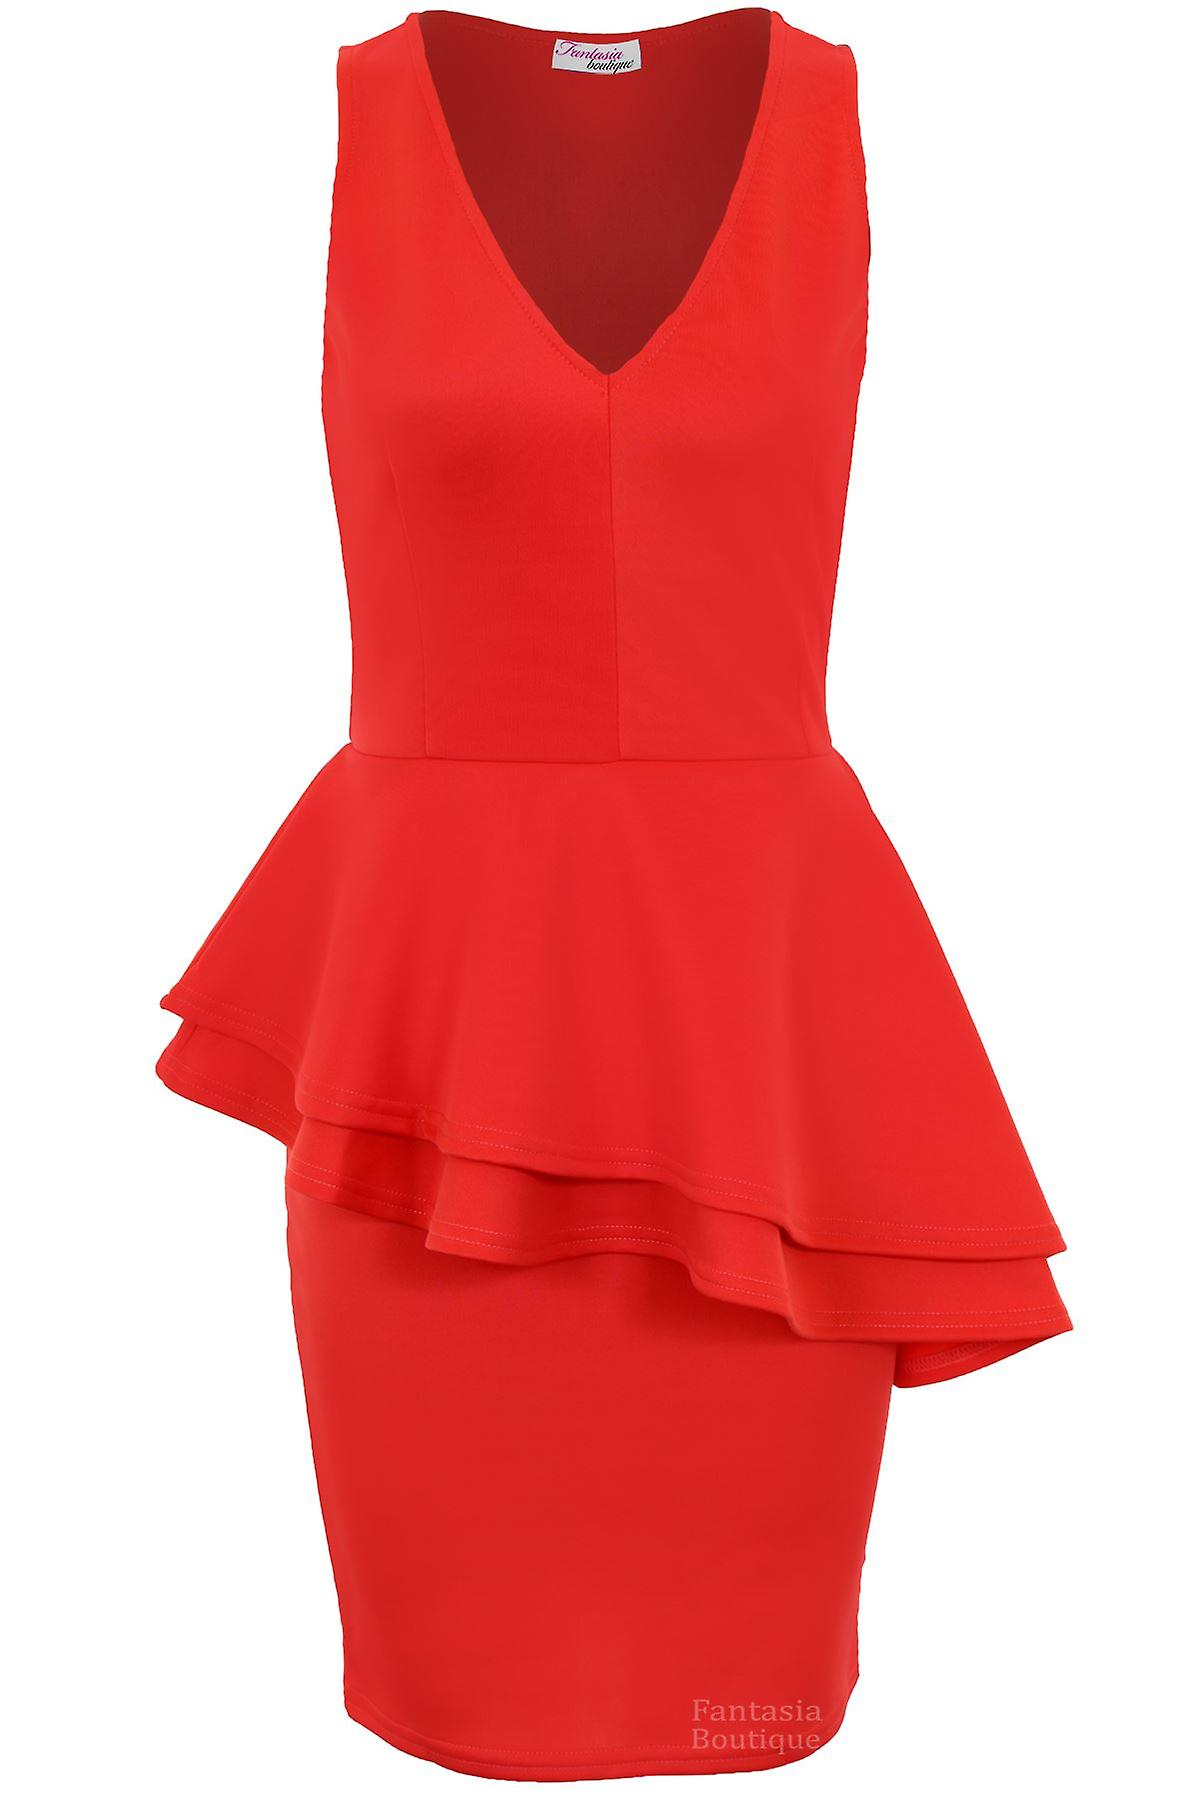 Ladies Sleeveless Side Slanted Double Peplum Frill Women's Party Bodycon Dress